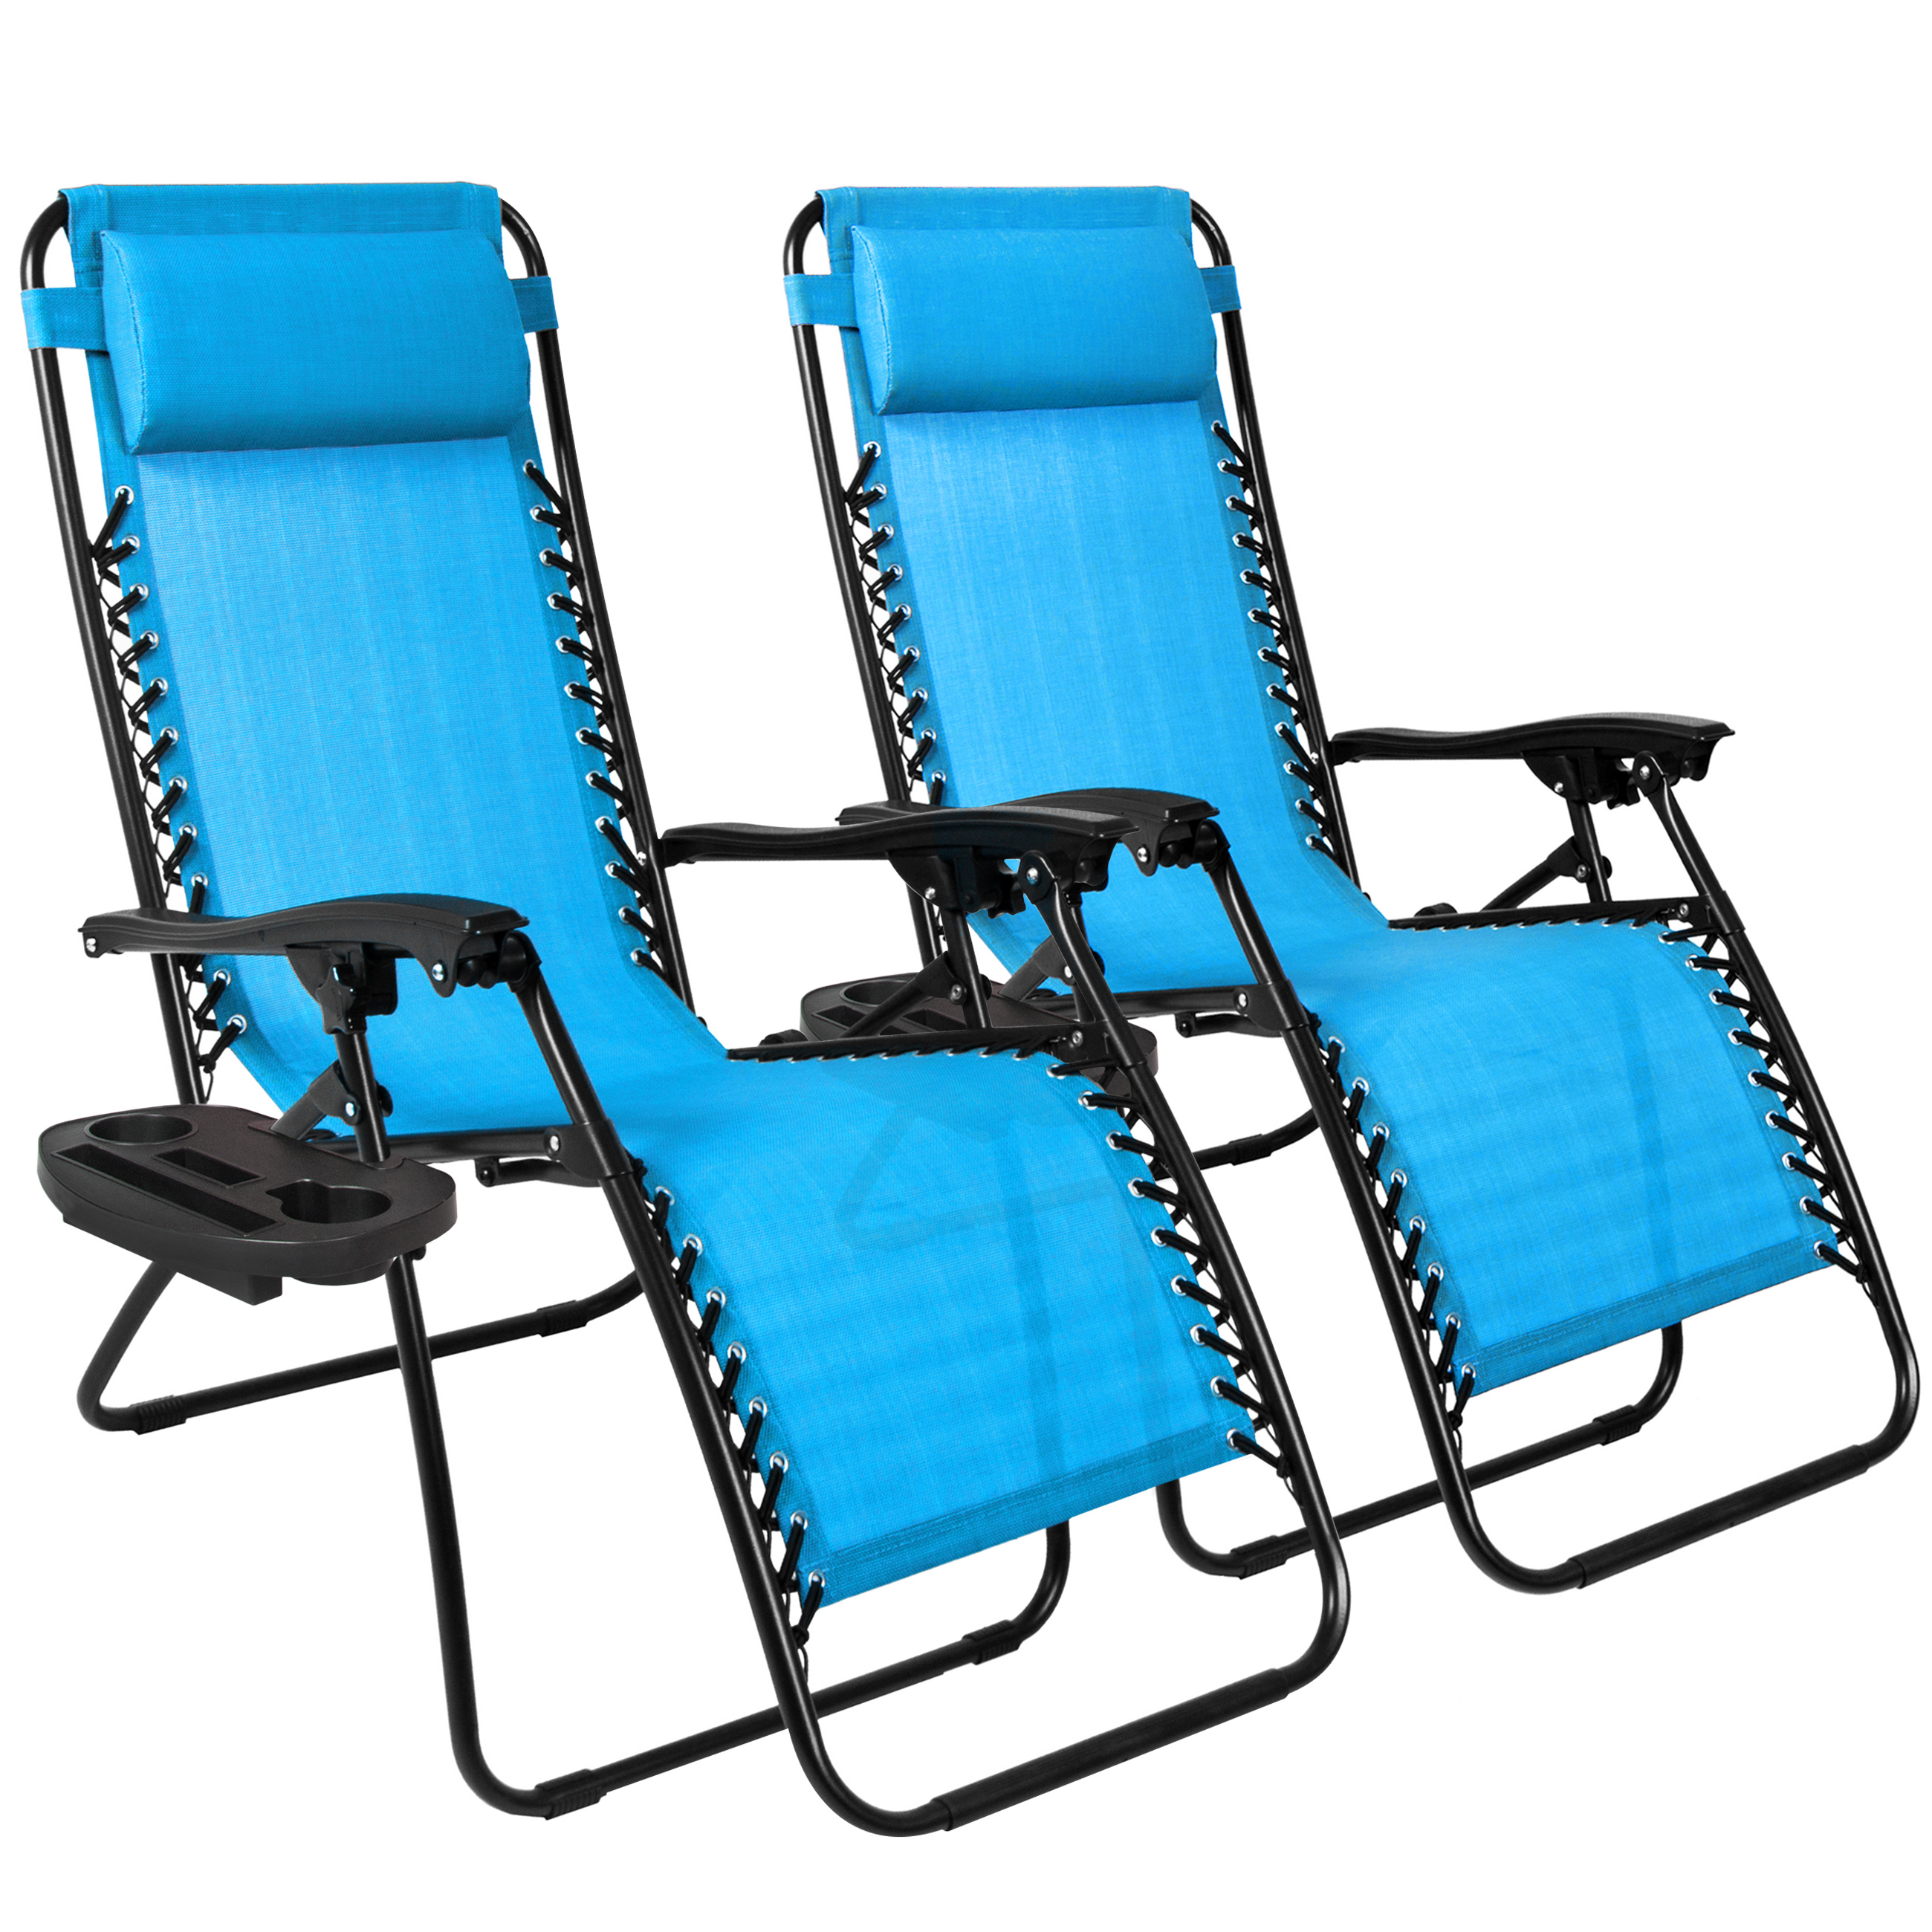 Best Choice Products Zero Gravity Chairs Case Of (2) Lounge Patio Chairs  Outdoor Yard Beach  Light Blue